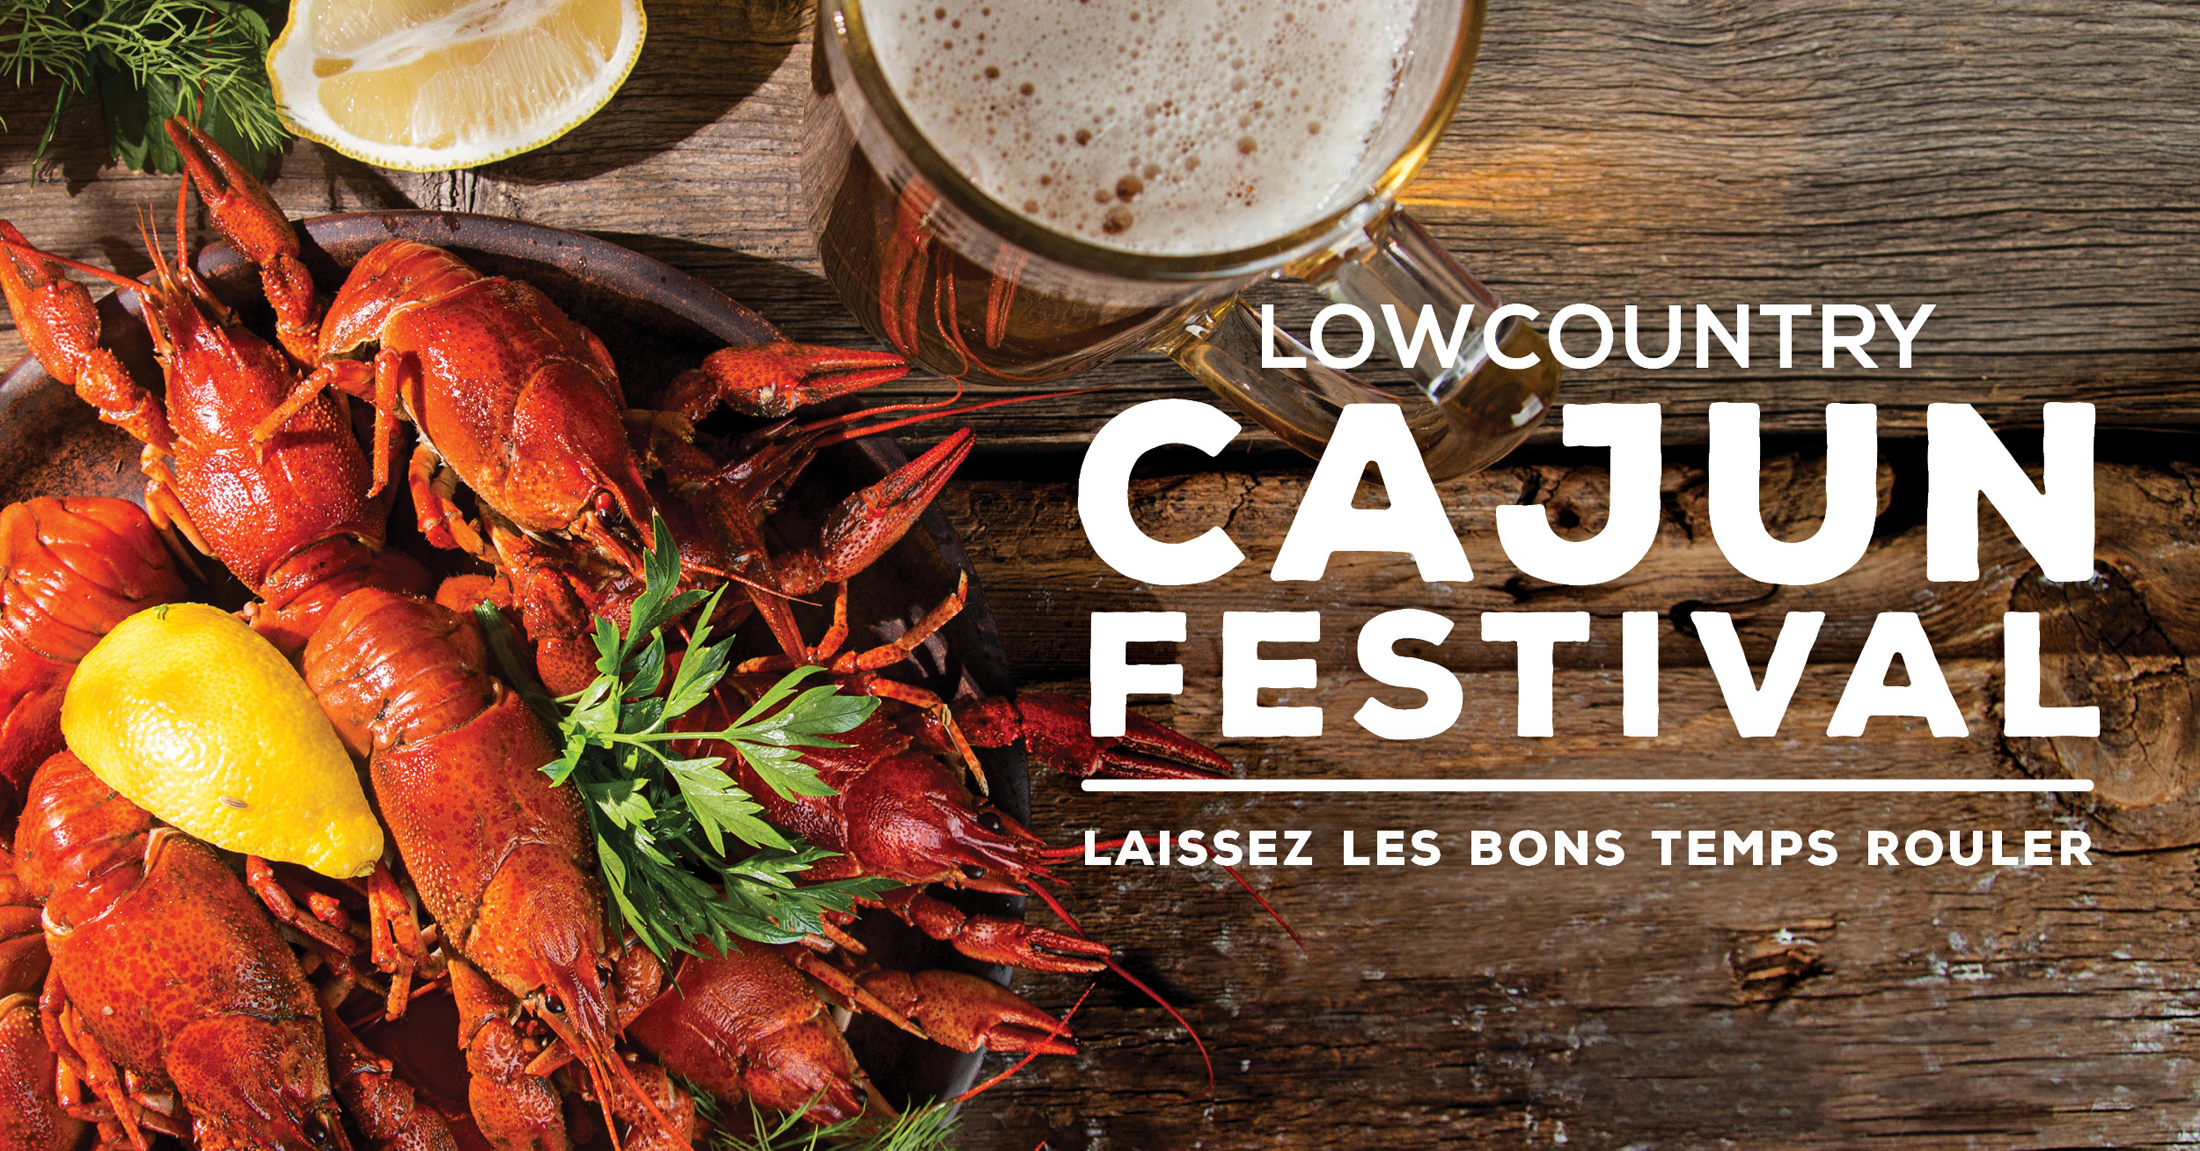 Lowcountry Cajun Festival image of boiled crawfish and a pint of beer on a wooden table top